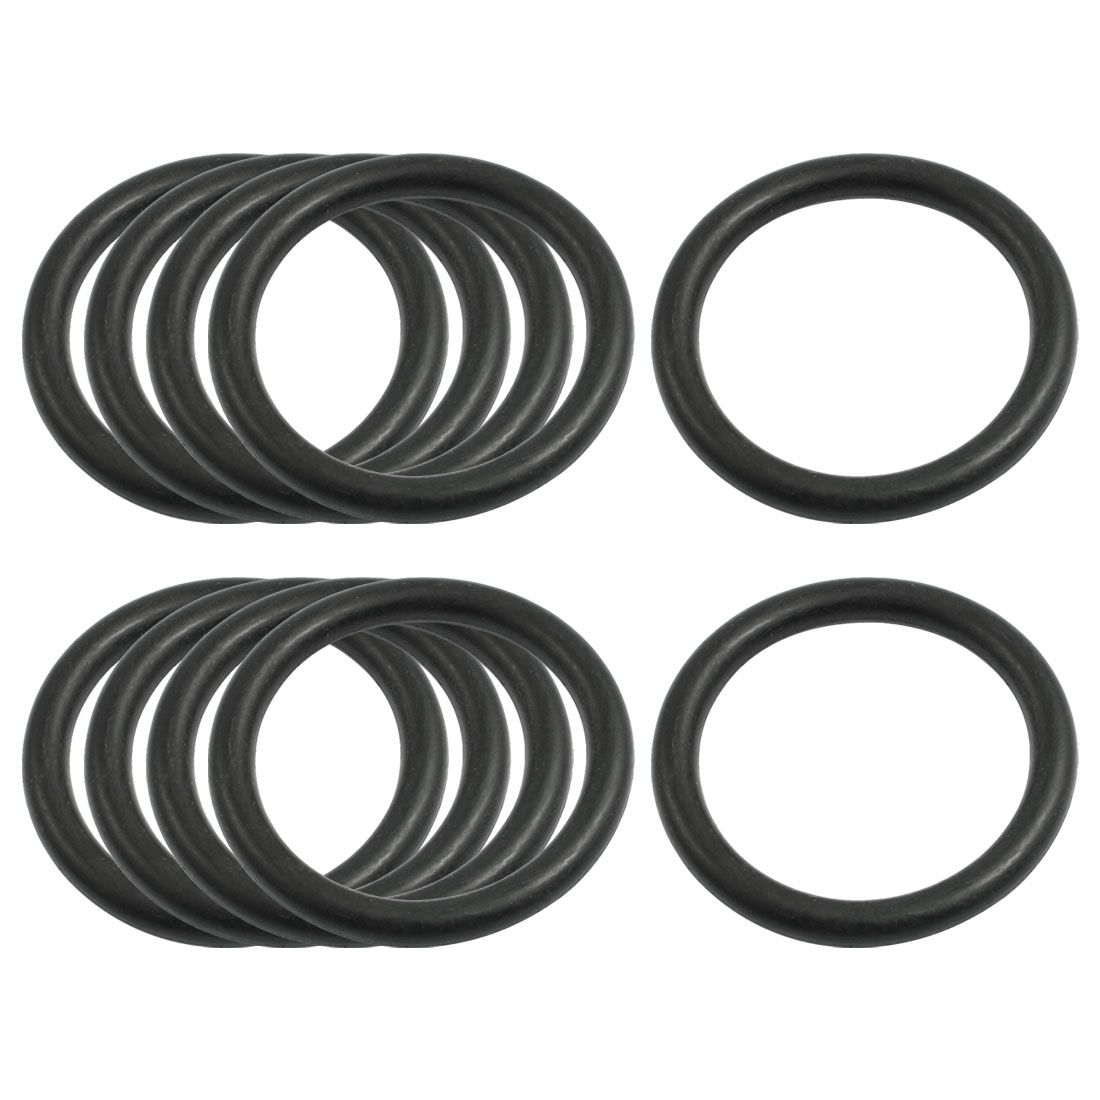 10 Pcs Oil Seal O Rings Black Nitrile Rubber 36mm OD 4mm Thickness